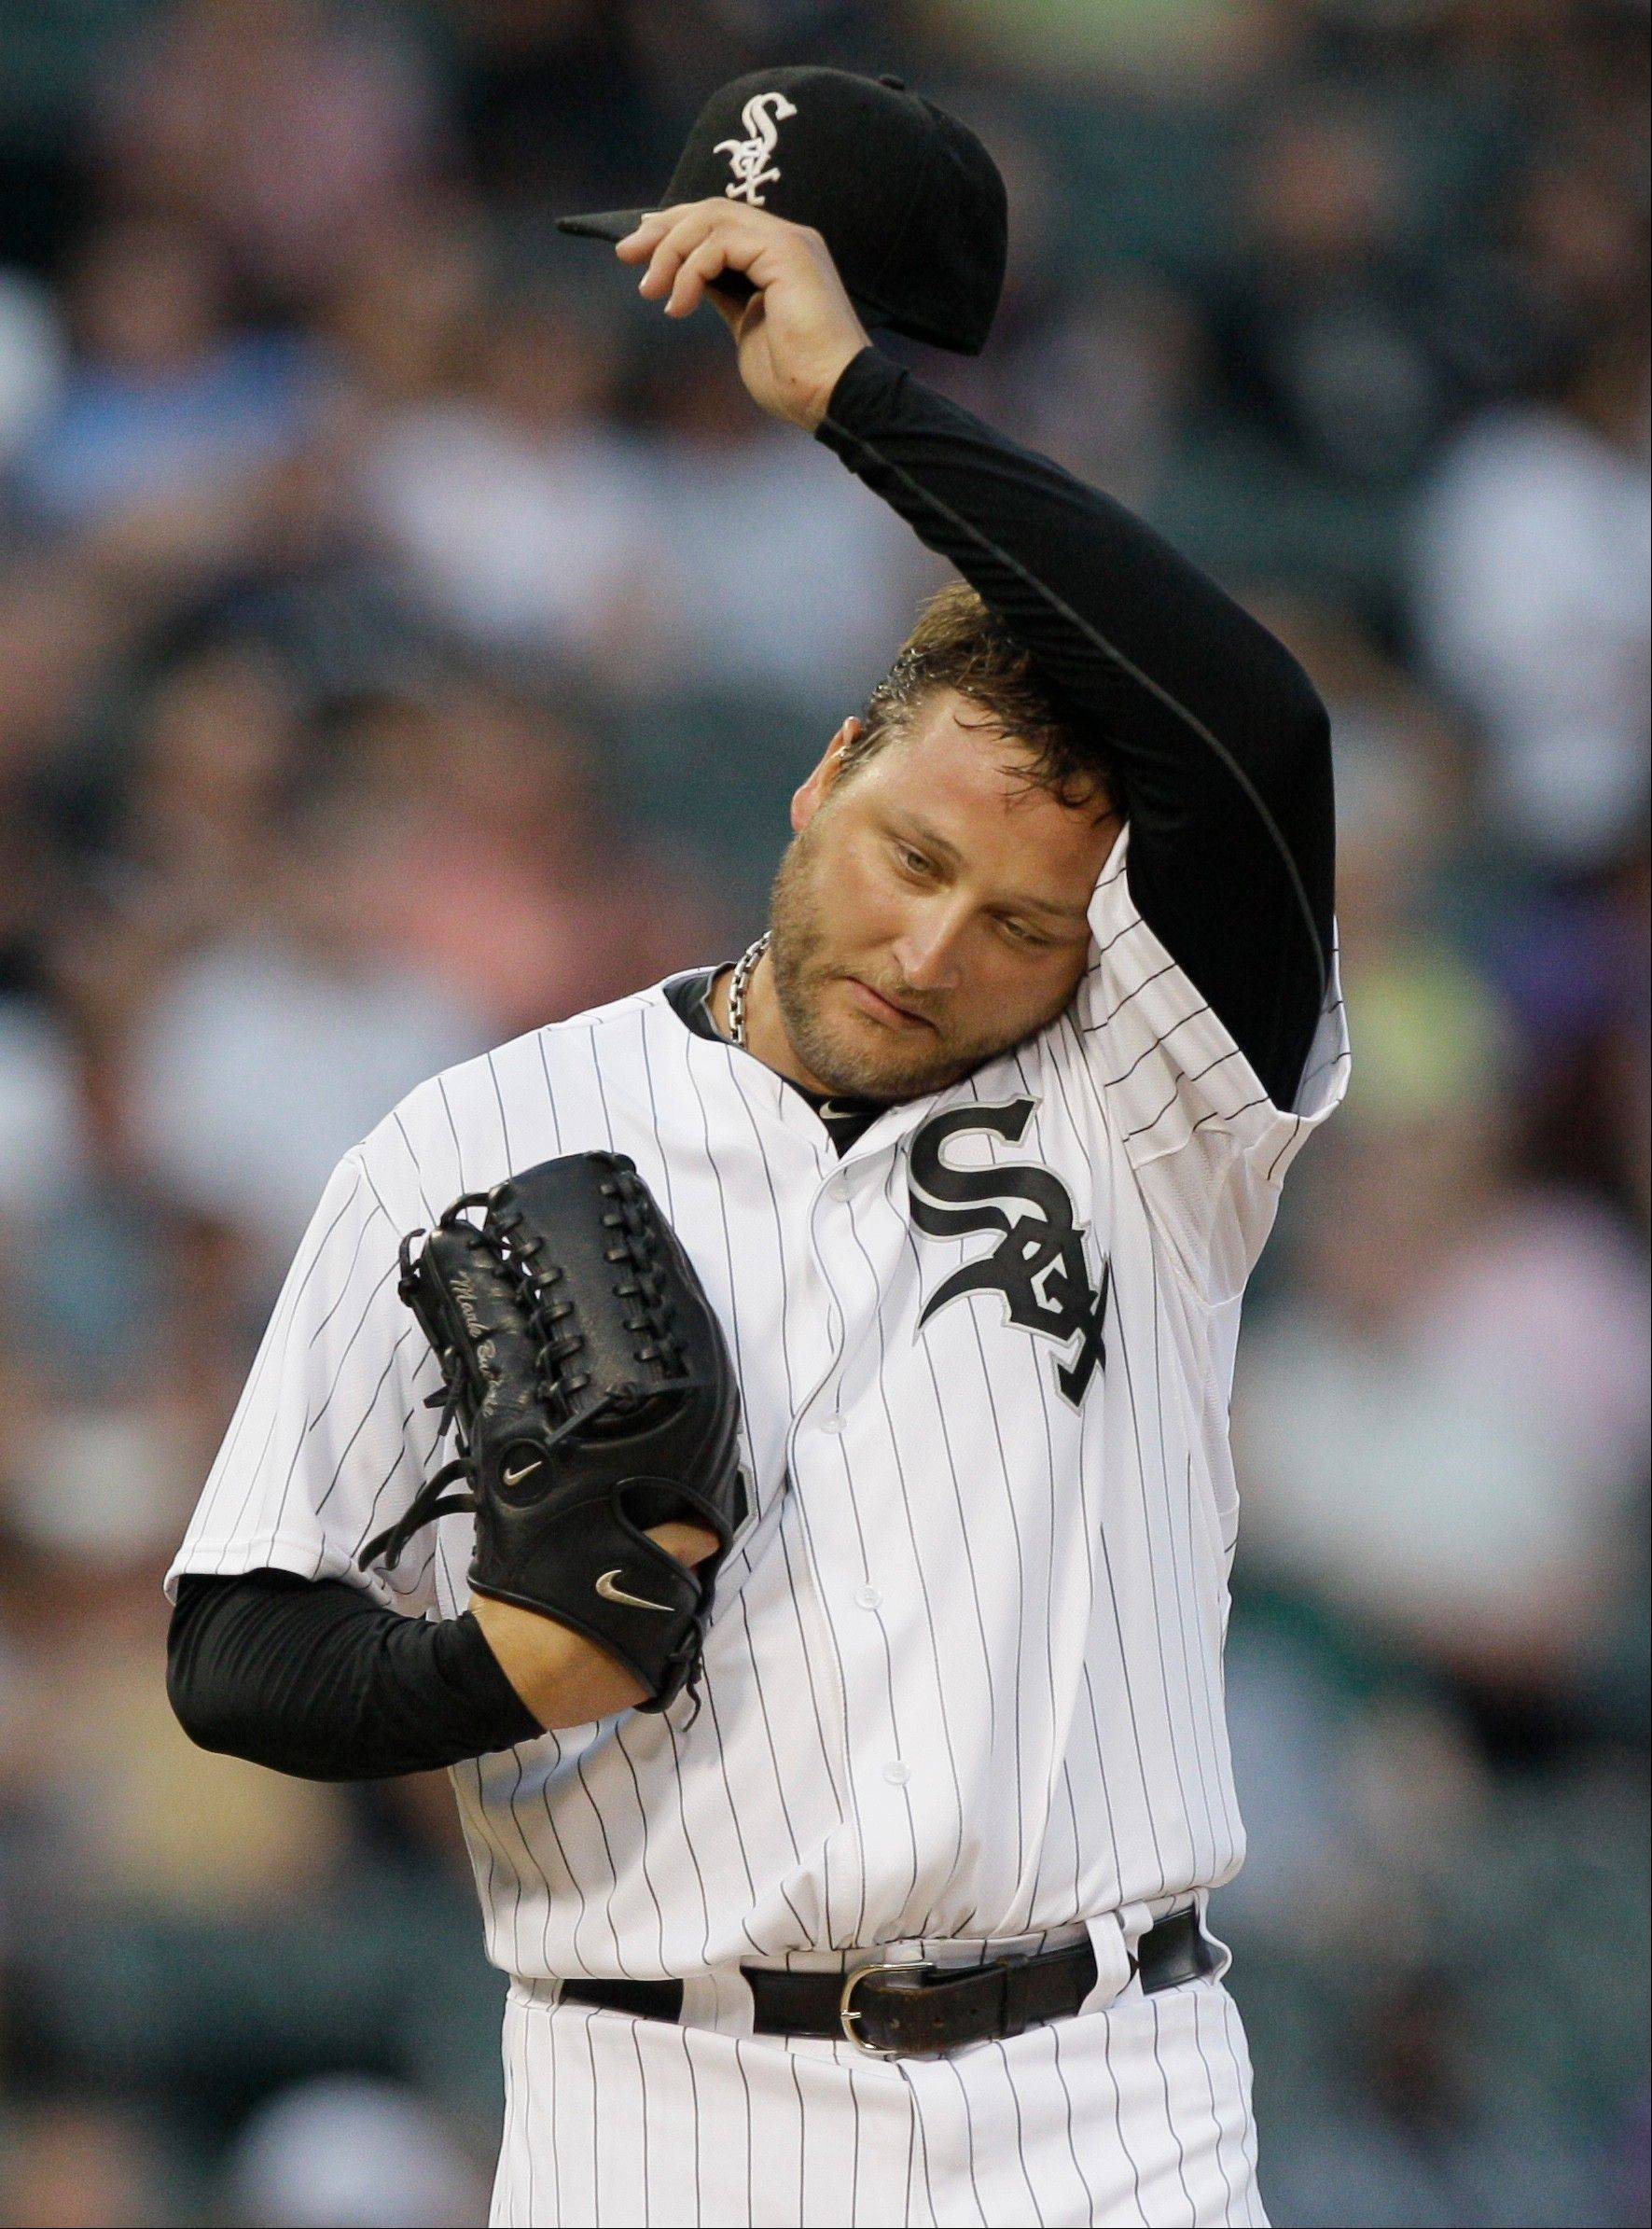 White Sox starter Mark Buehrle allowed more than 3 runs for the first time in 19 starts Wednesday night.